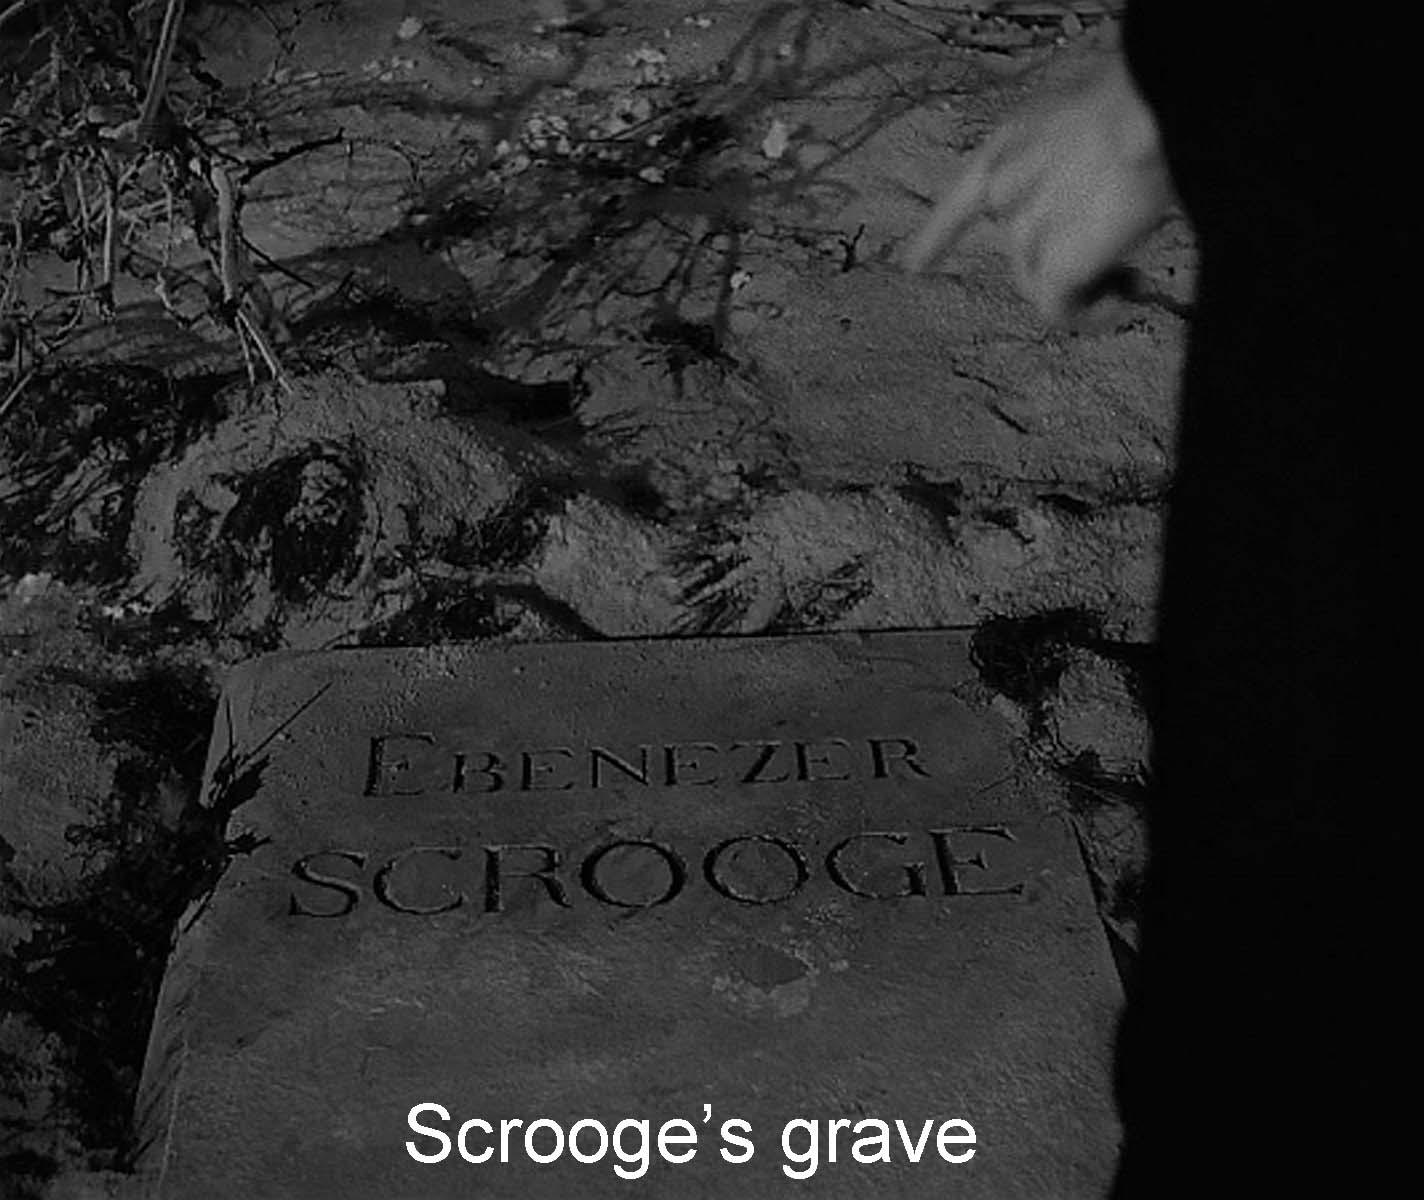 Scrooge's grave